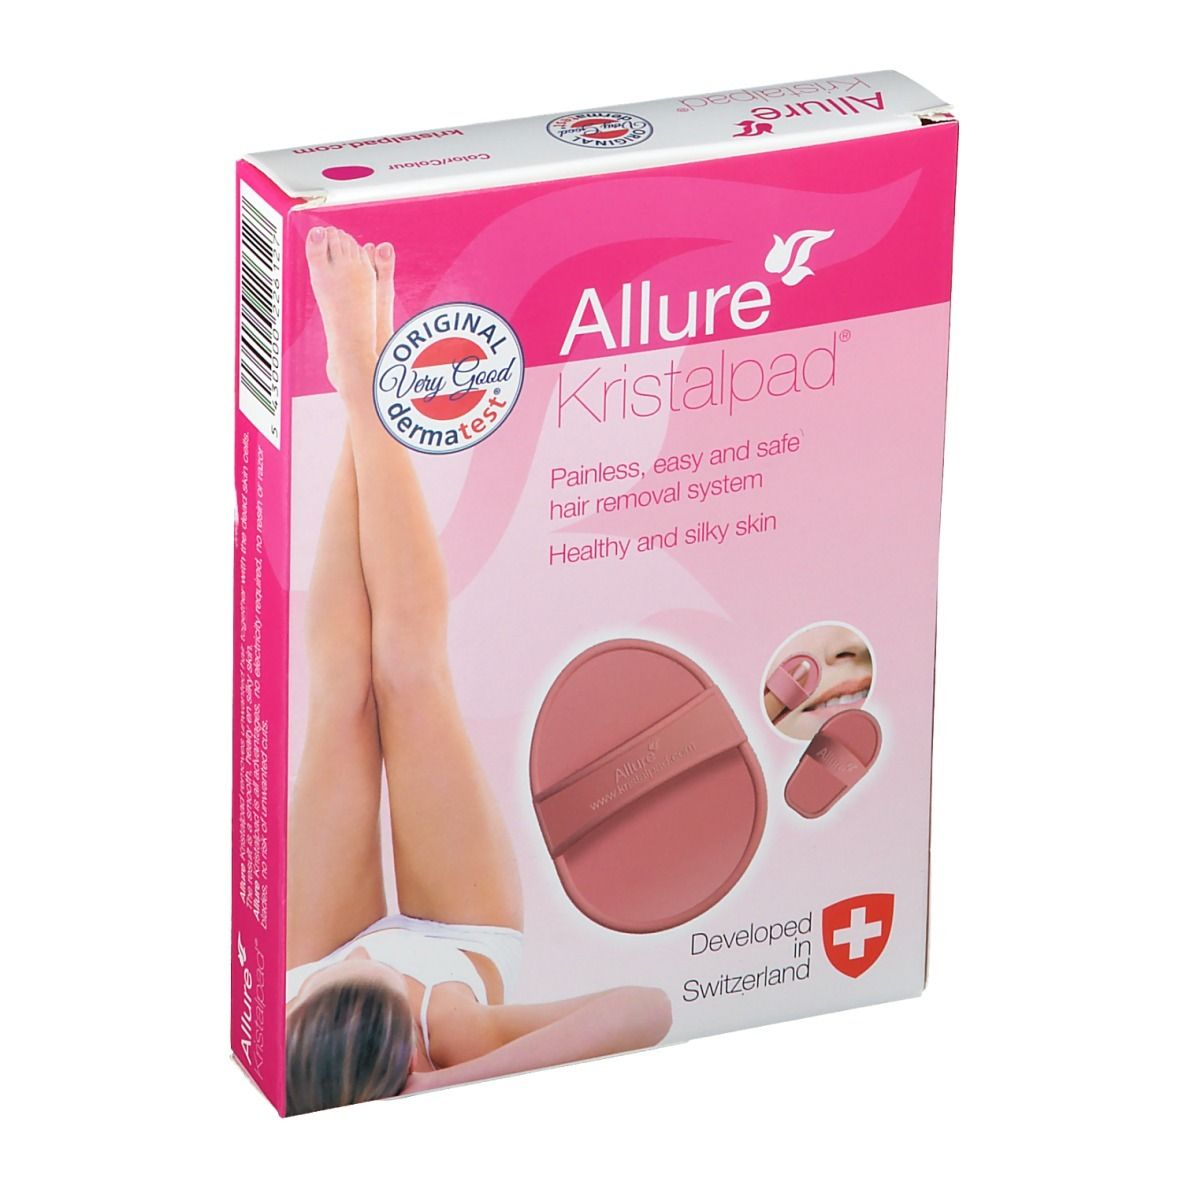 Image of Allure Kristalpad®